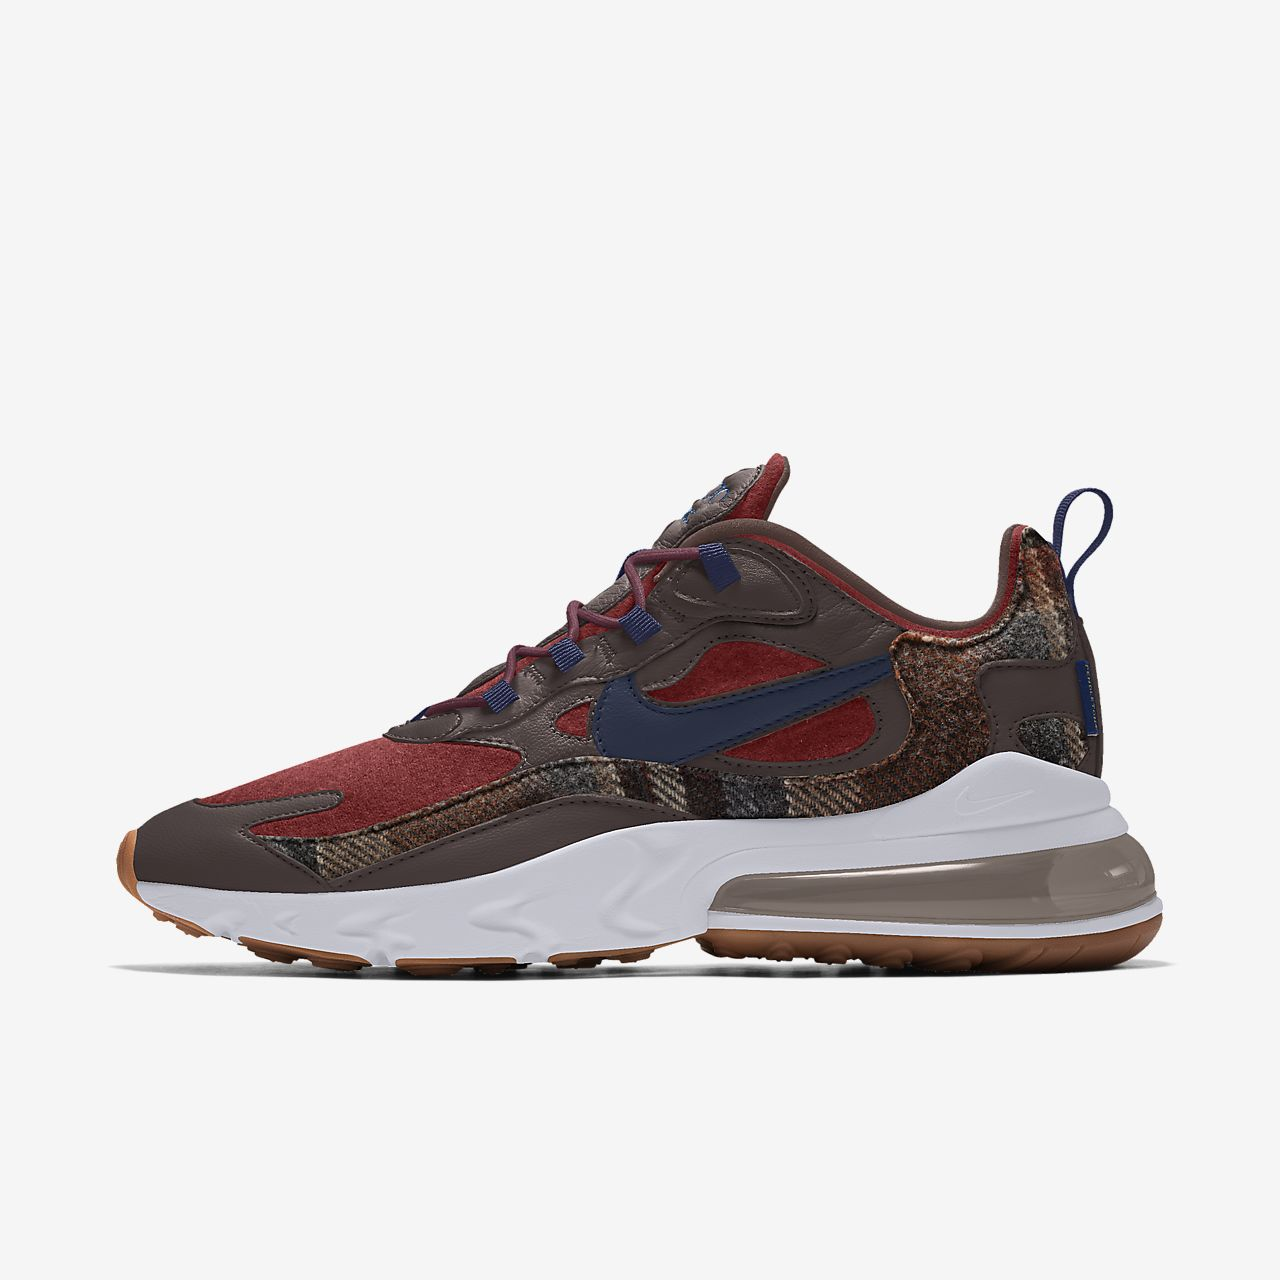 Specialdesignad sko Nike Air Max 270 React Pendleton By You för kvinnor